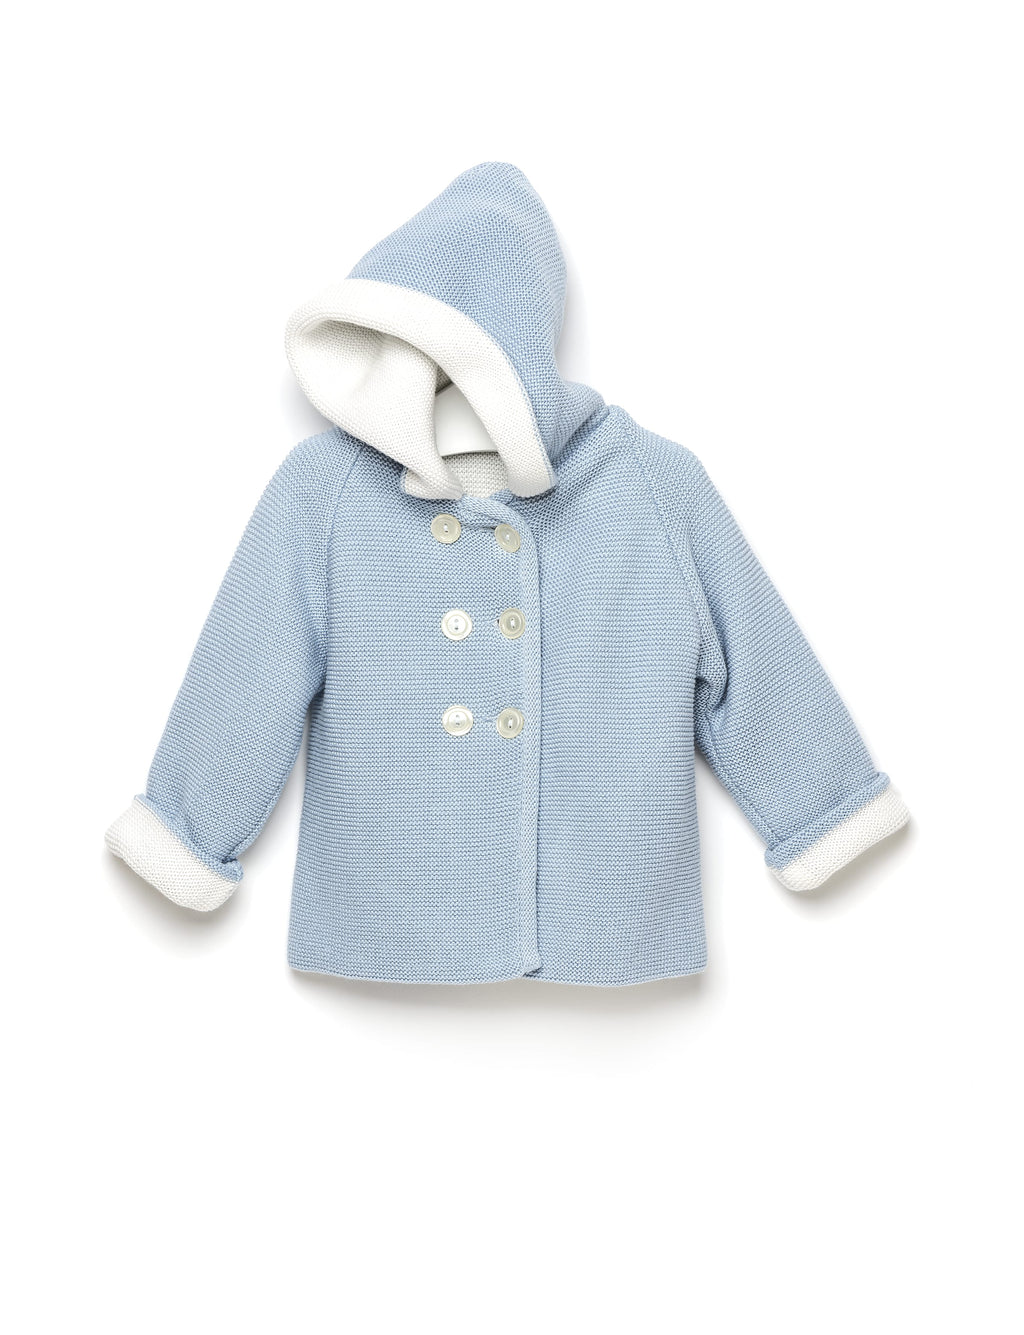 Blue and White Hooded Coat